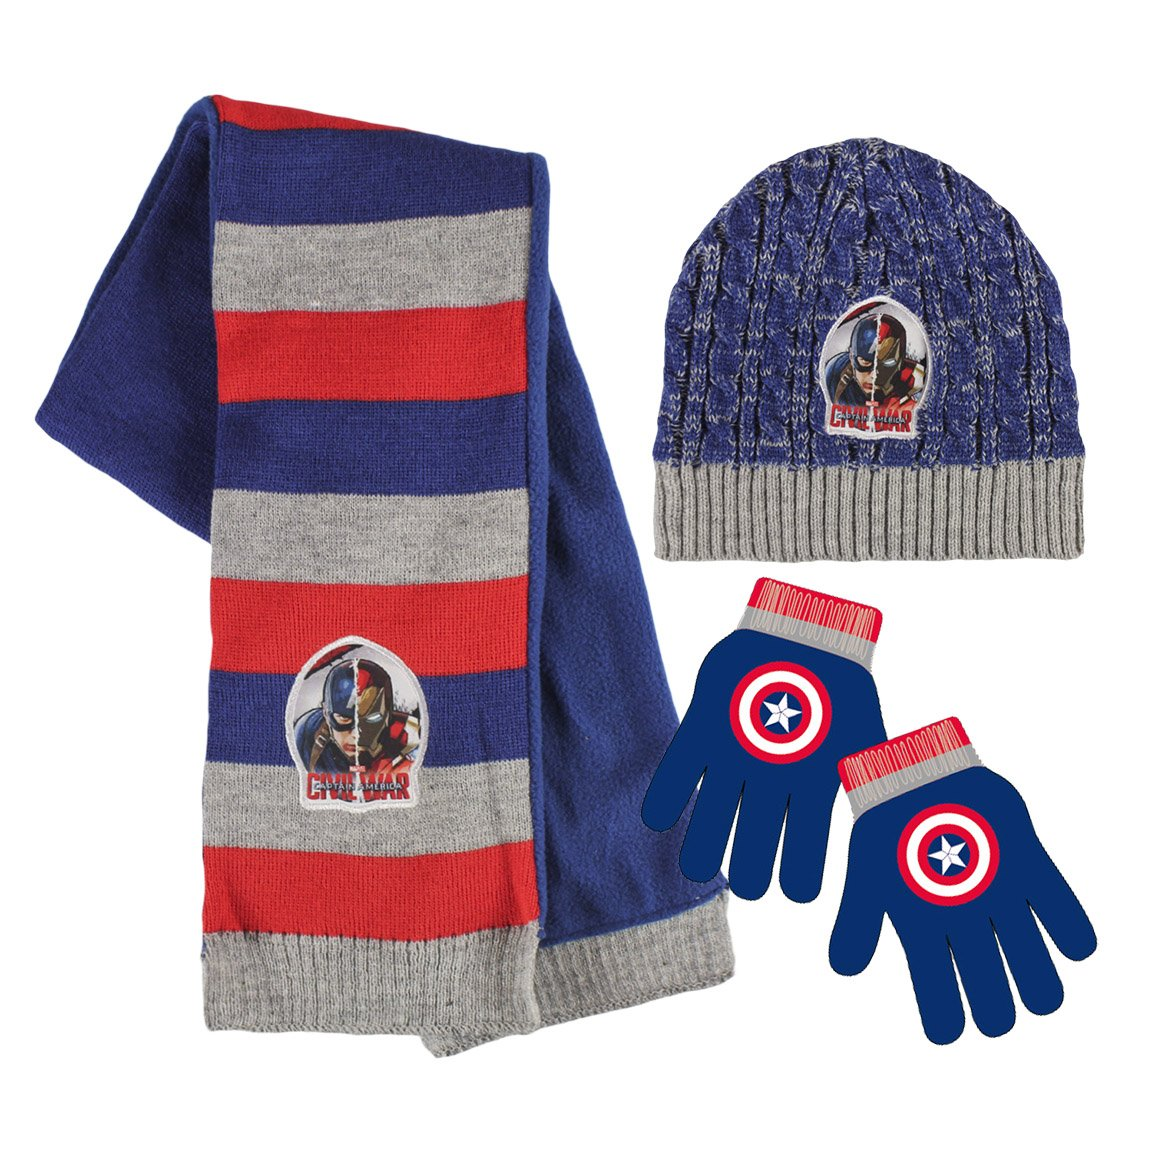 d6d07fb4e Marvel 2200001554 Civil War Captain America and Iron Man Childrens Winter  Set includes Beanie Hat/Gloves/Scarf (One Size)